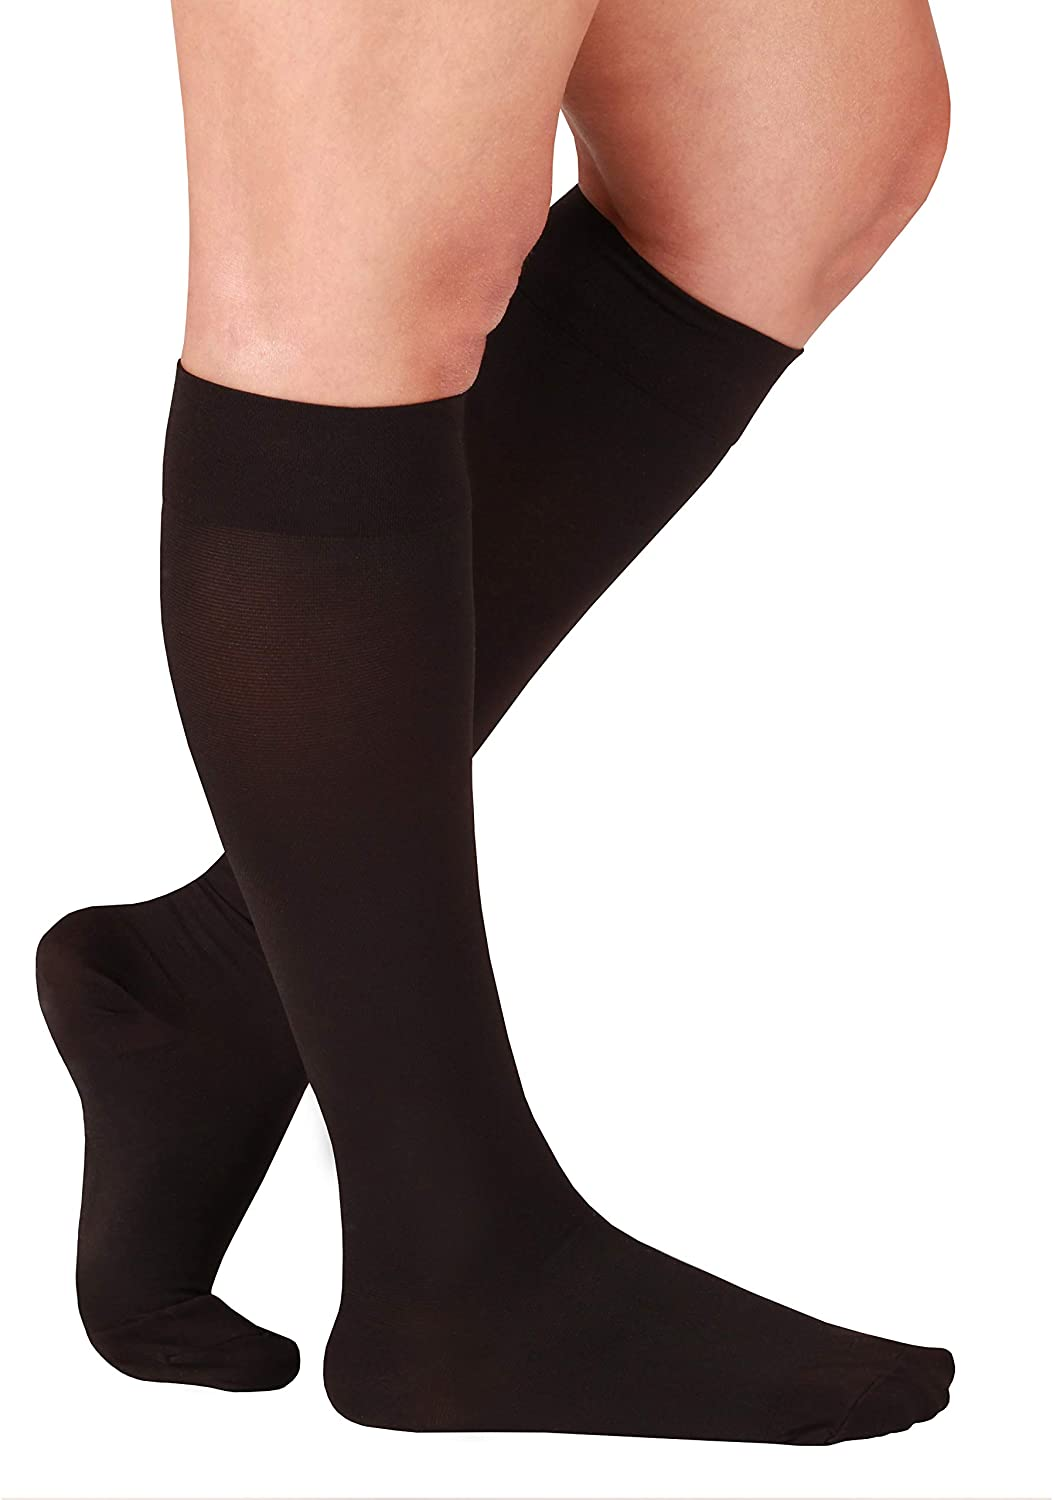 Essentials Compression Socks Made in The USA - Opaque Compression Stockings for Woman - Closed Toe - Support Socks for Men - Firm Support 20-30mmHg - 1 Pair Size XX-Large, Black